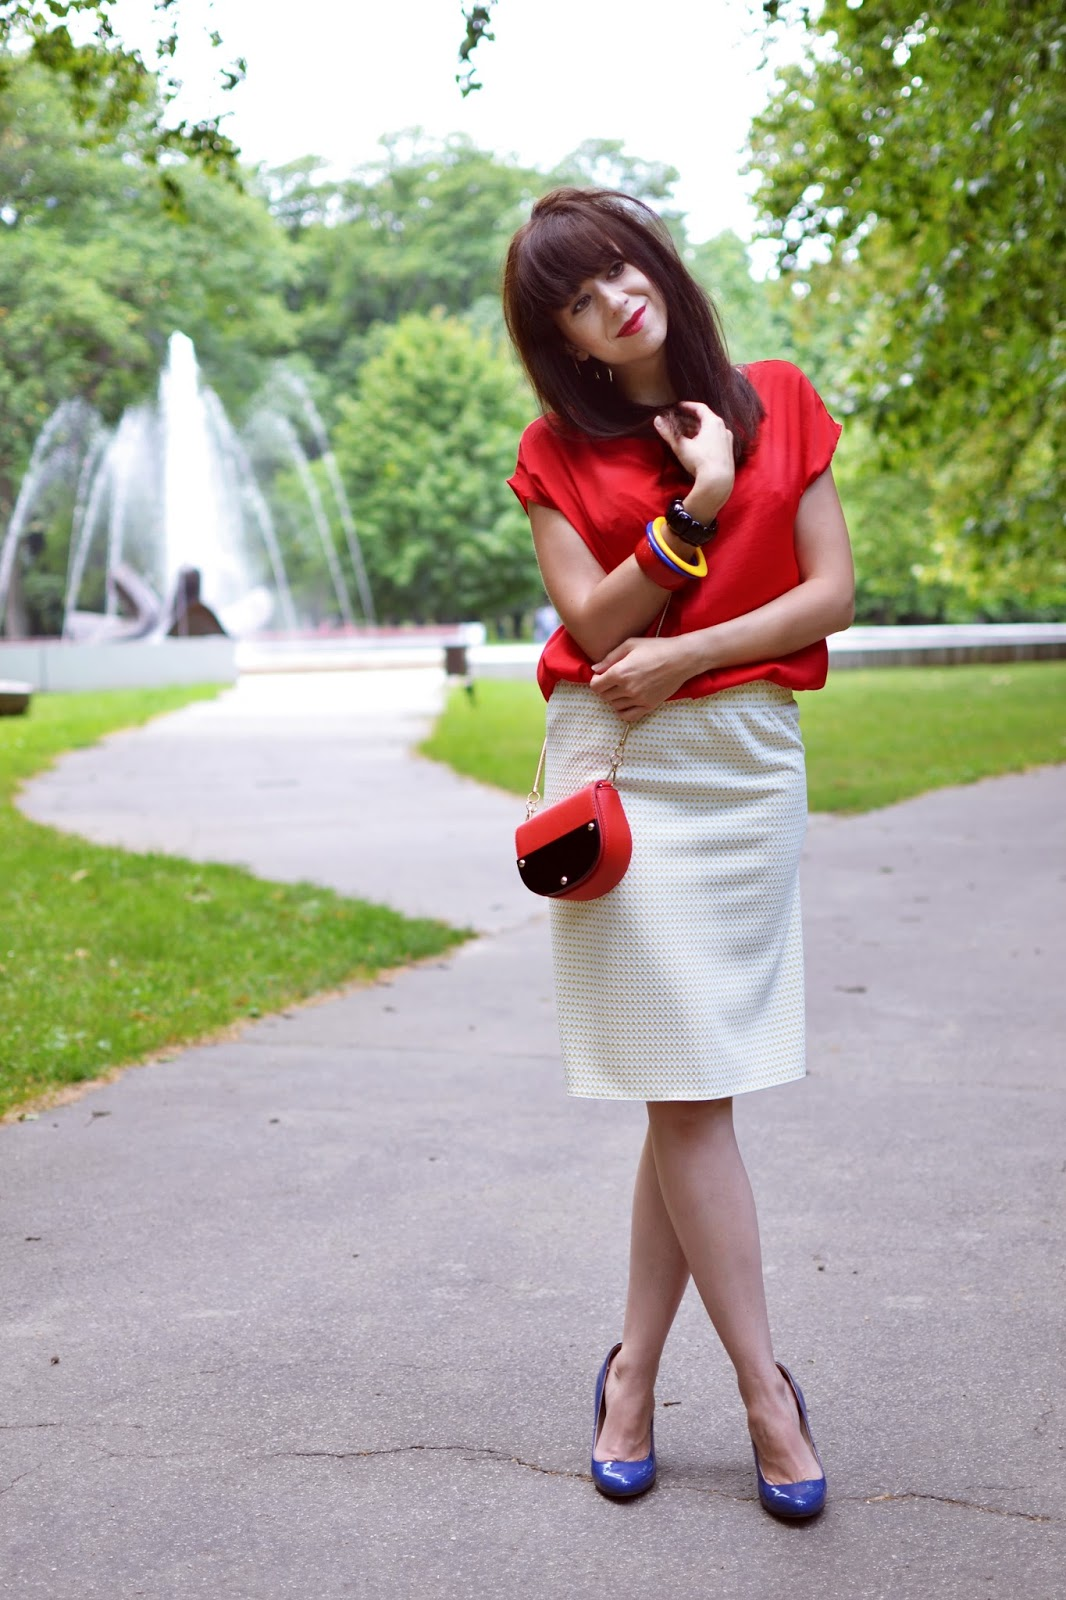 Fountain of joy_Katharine-fashion is beautiful_Katarína Jakubčová_fashion blogger